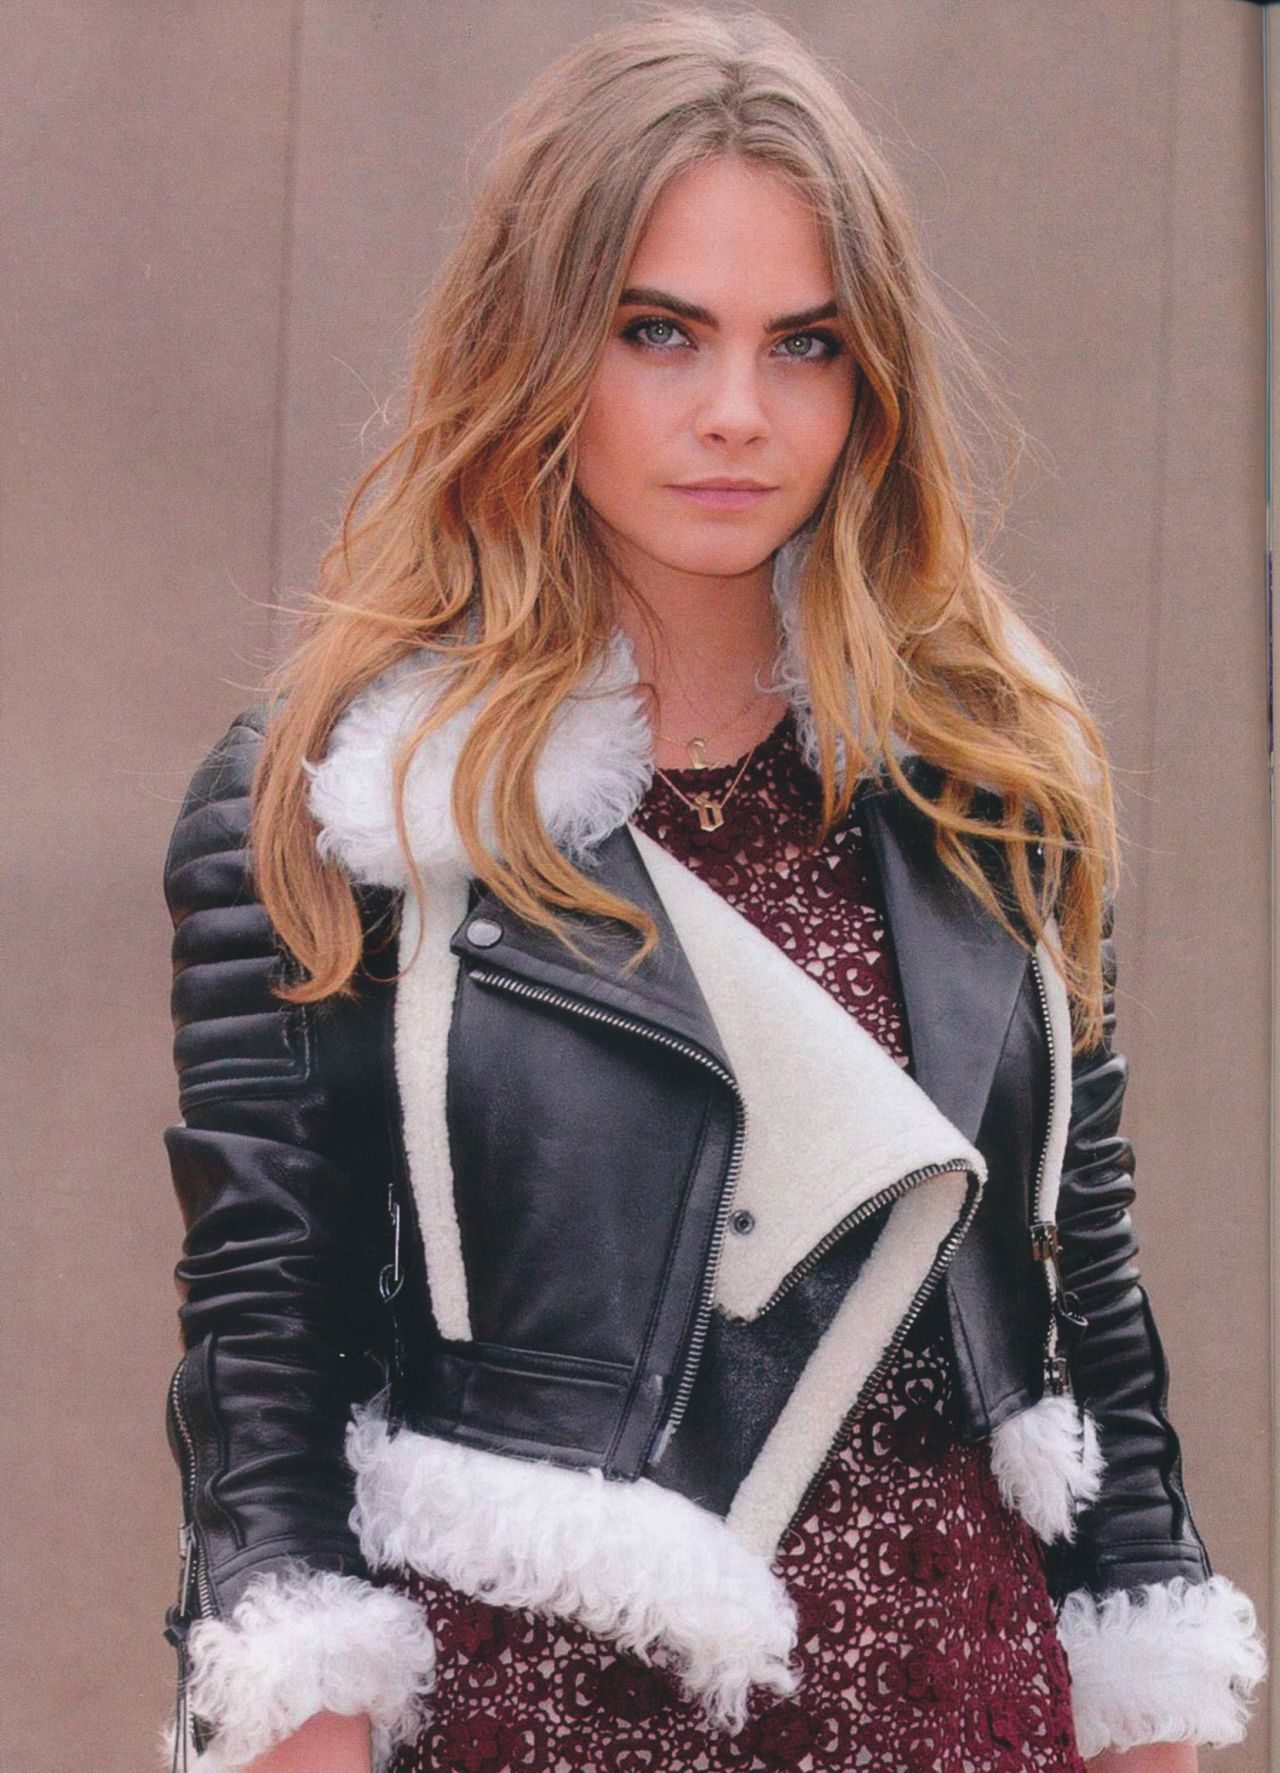 Cara Delevingne - Look Magazine March 16th 2015 Issue